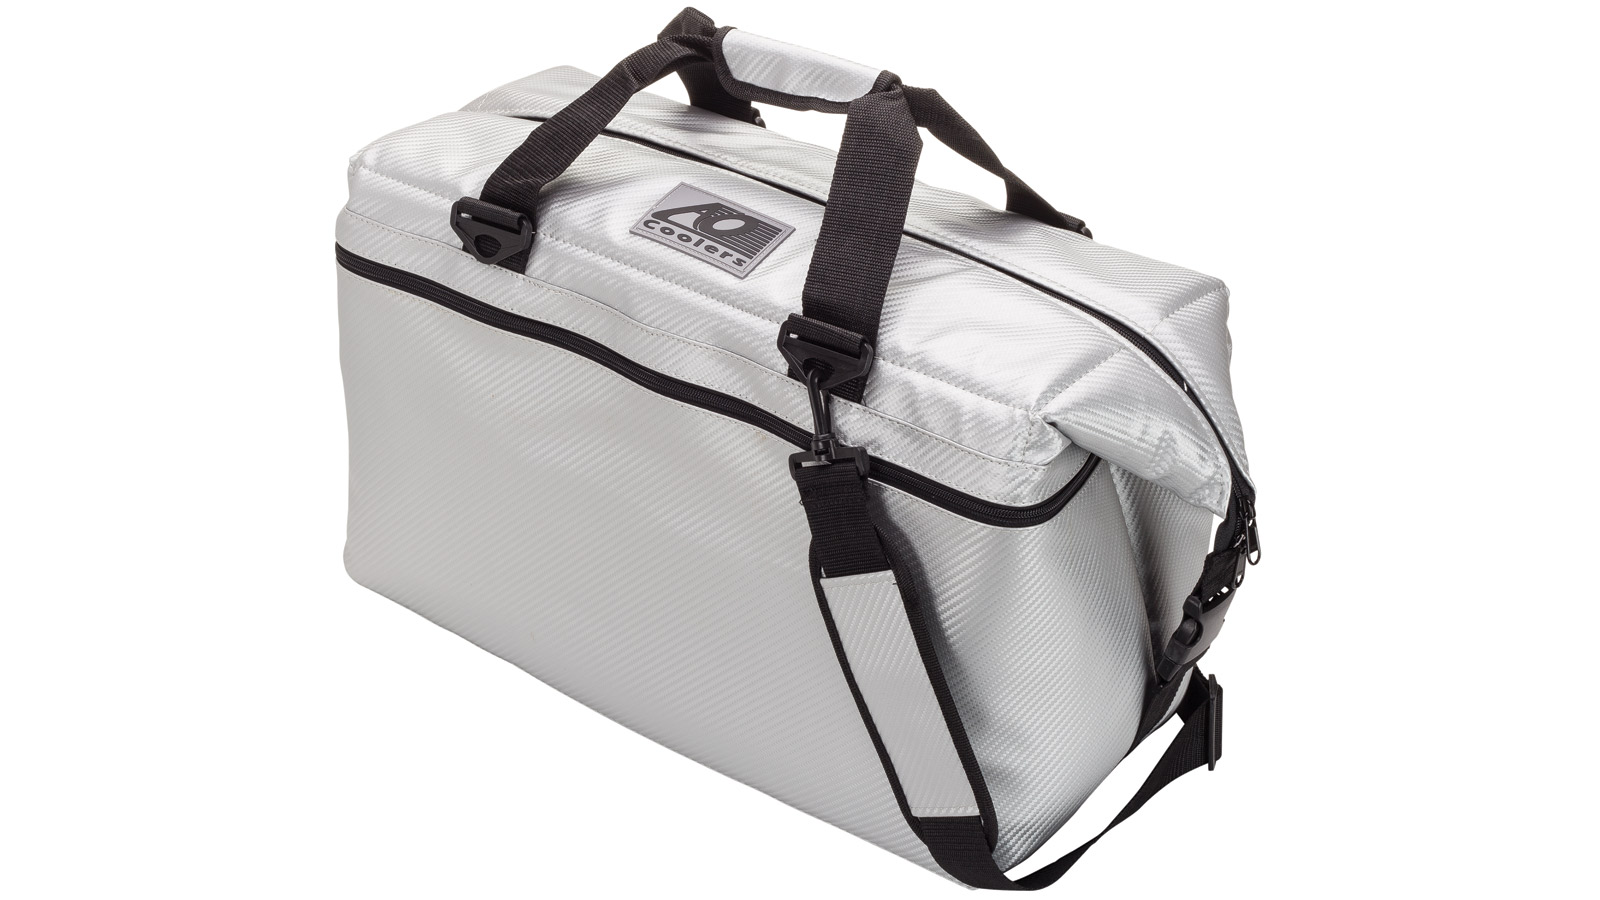 AO Coolers 36-Pack Carbon Series Cooler Silver AOCR36SL